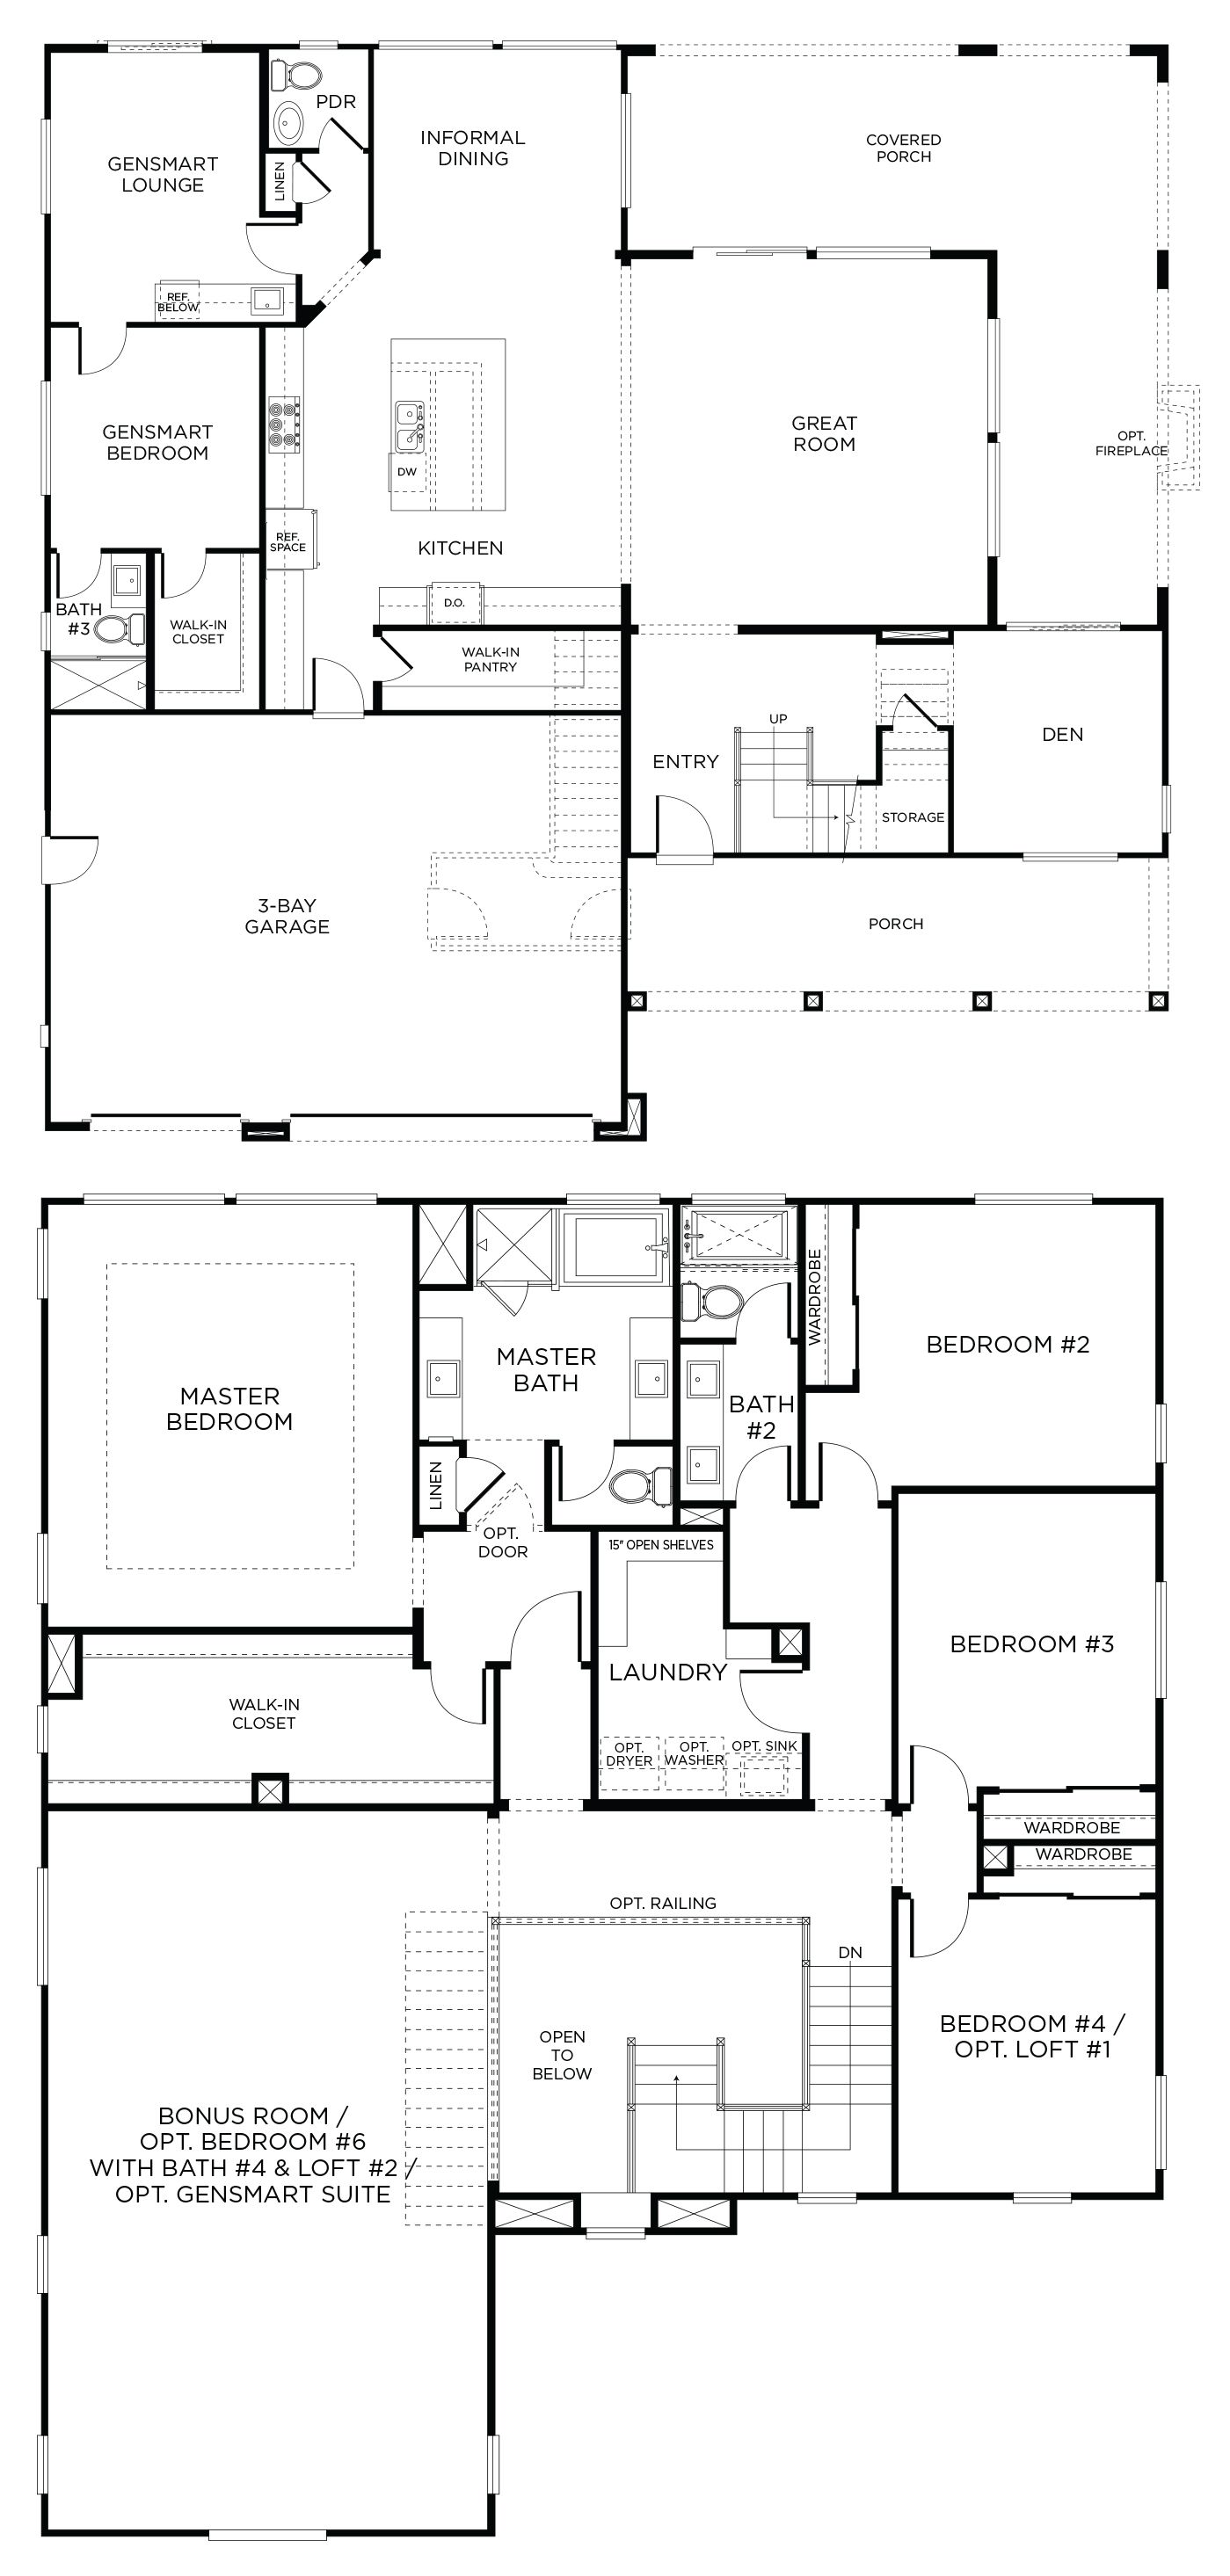 Tandem Garage House Plans Flagstone Plan 3br Inland Empire Pardee Homes Large House